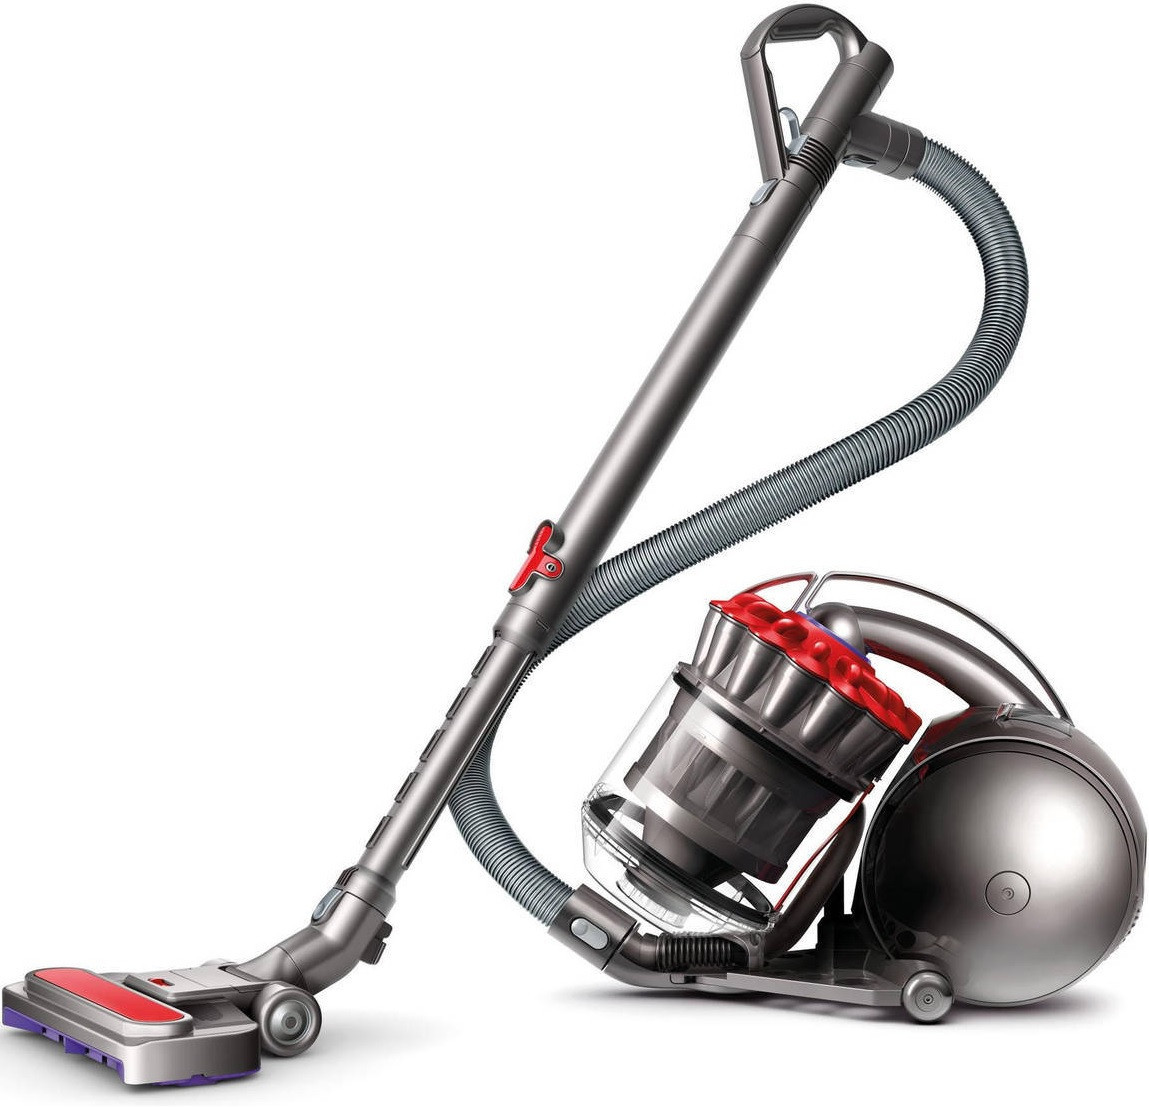 Dyson the ball multi-floor canister vacuum сушилки дл¤ рук dyson аналоги